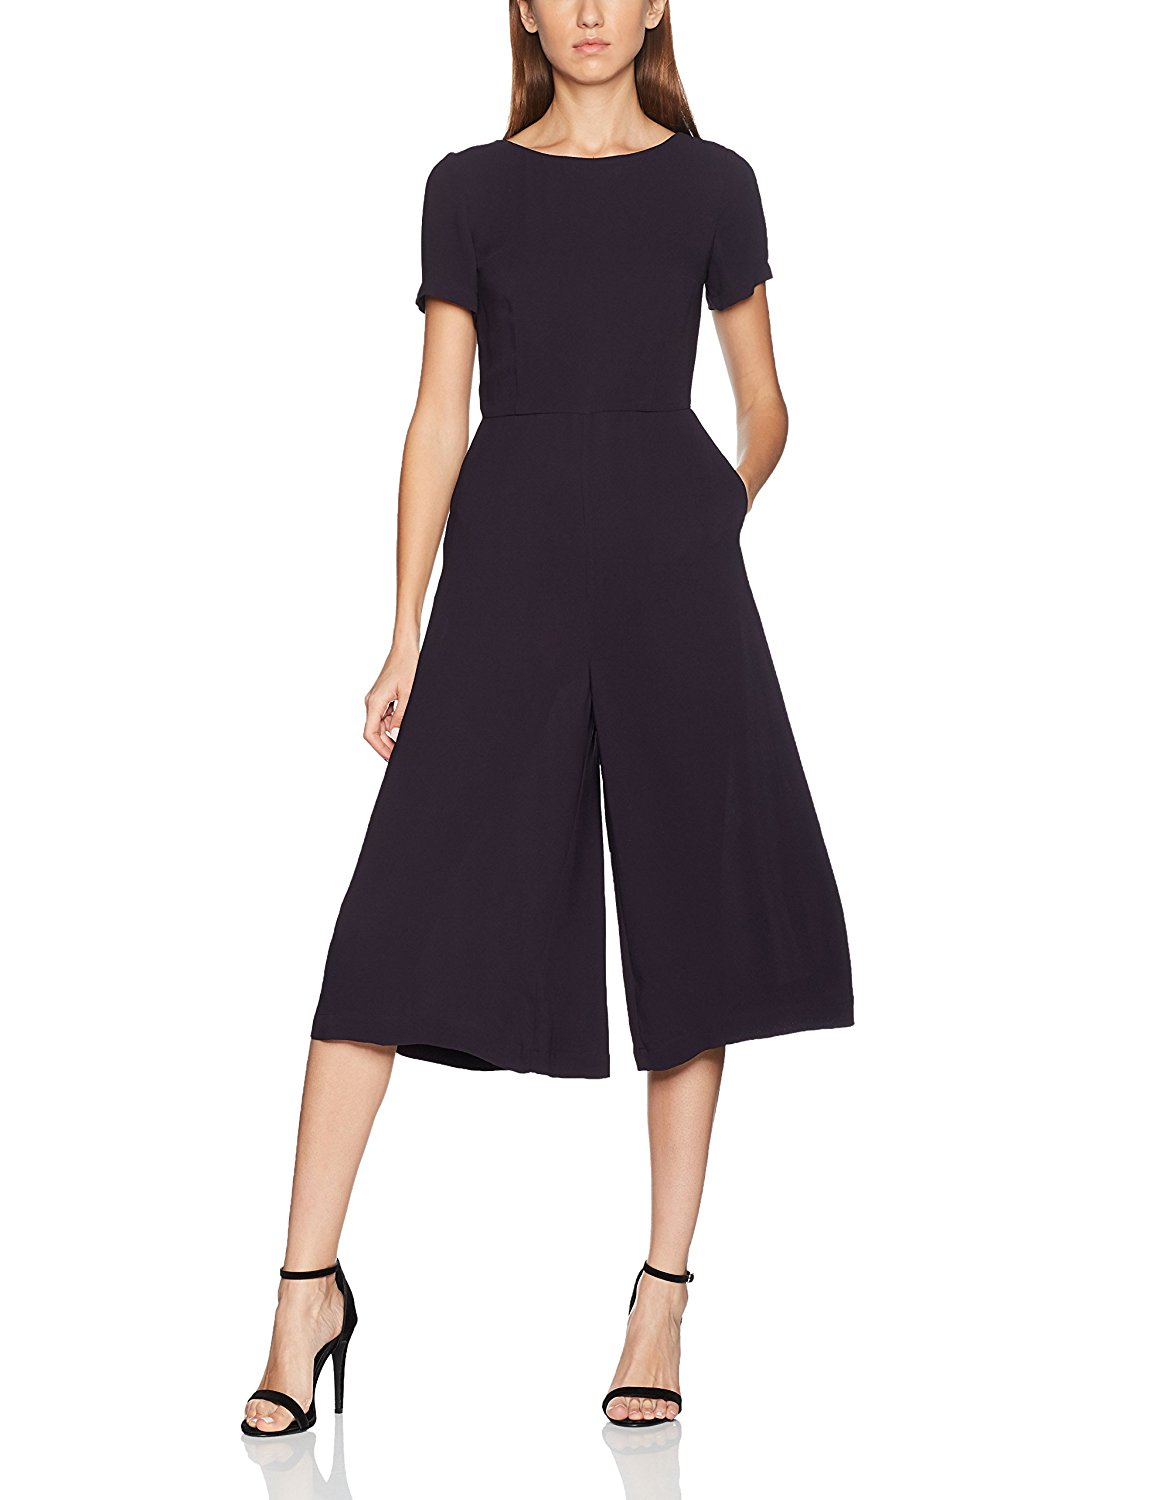 8648b96aec5f Buy French Connection Womens Romanov Posey Crepe Fit and Flare Dress ...